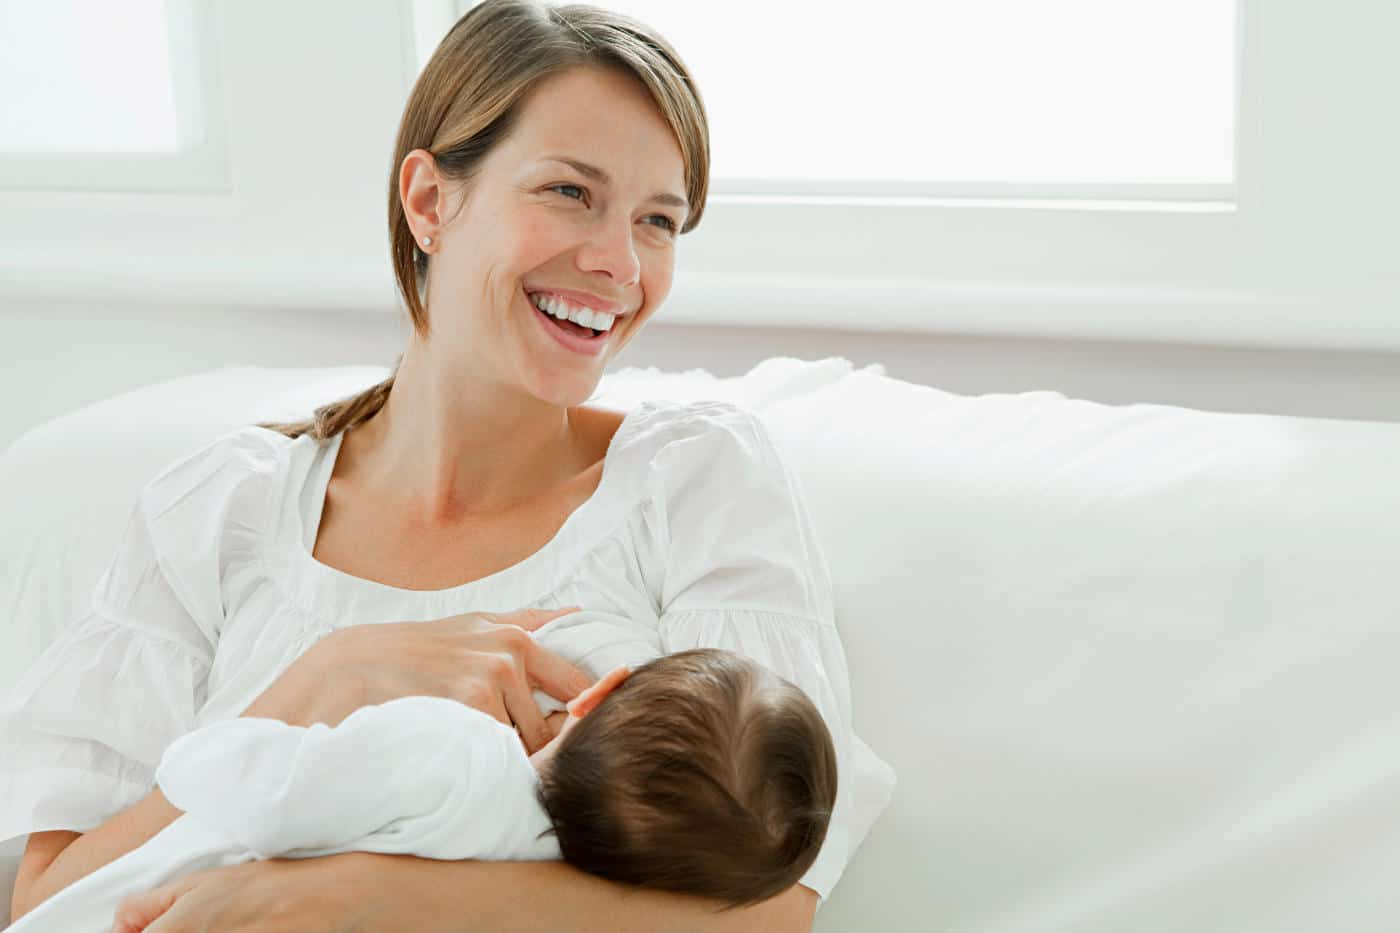 while breastfeeding, lose weight